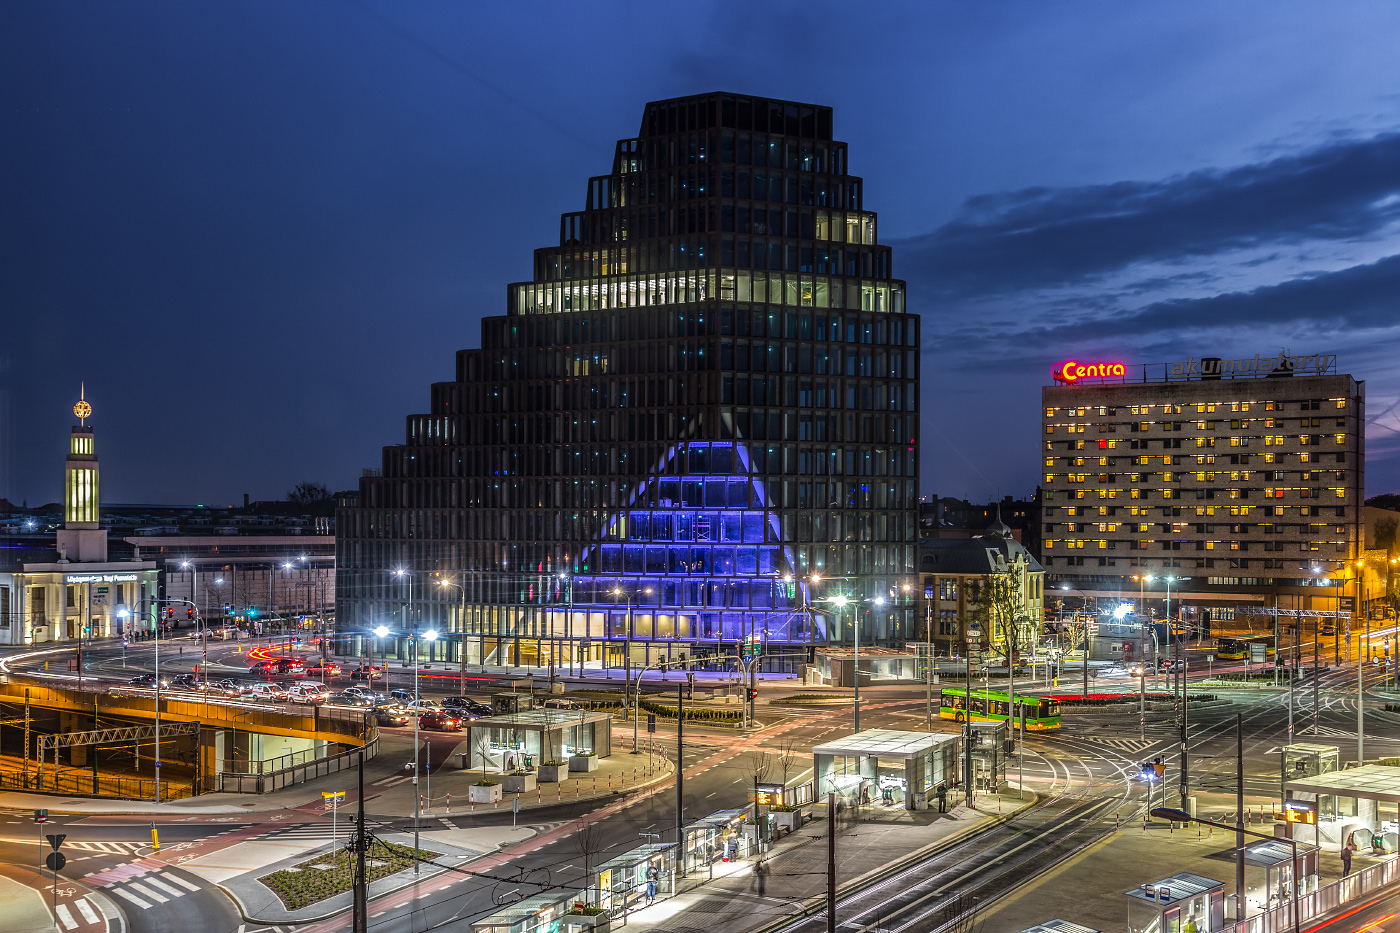 Bałtyk named building of the year by BRYŁA readers